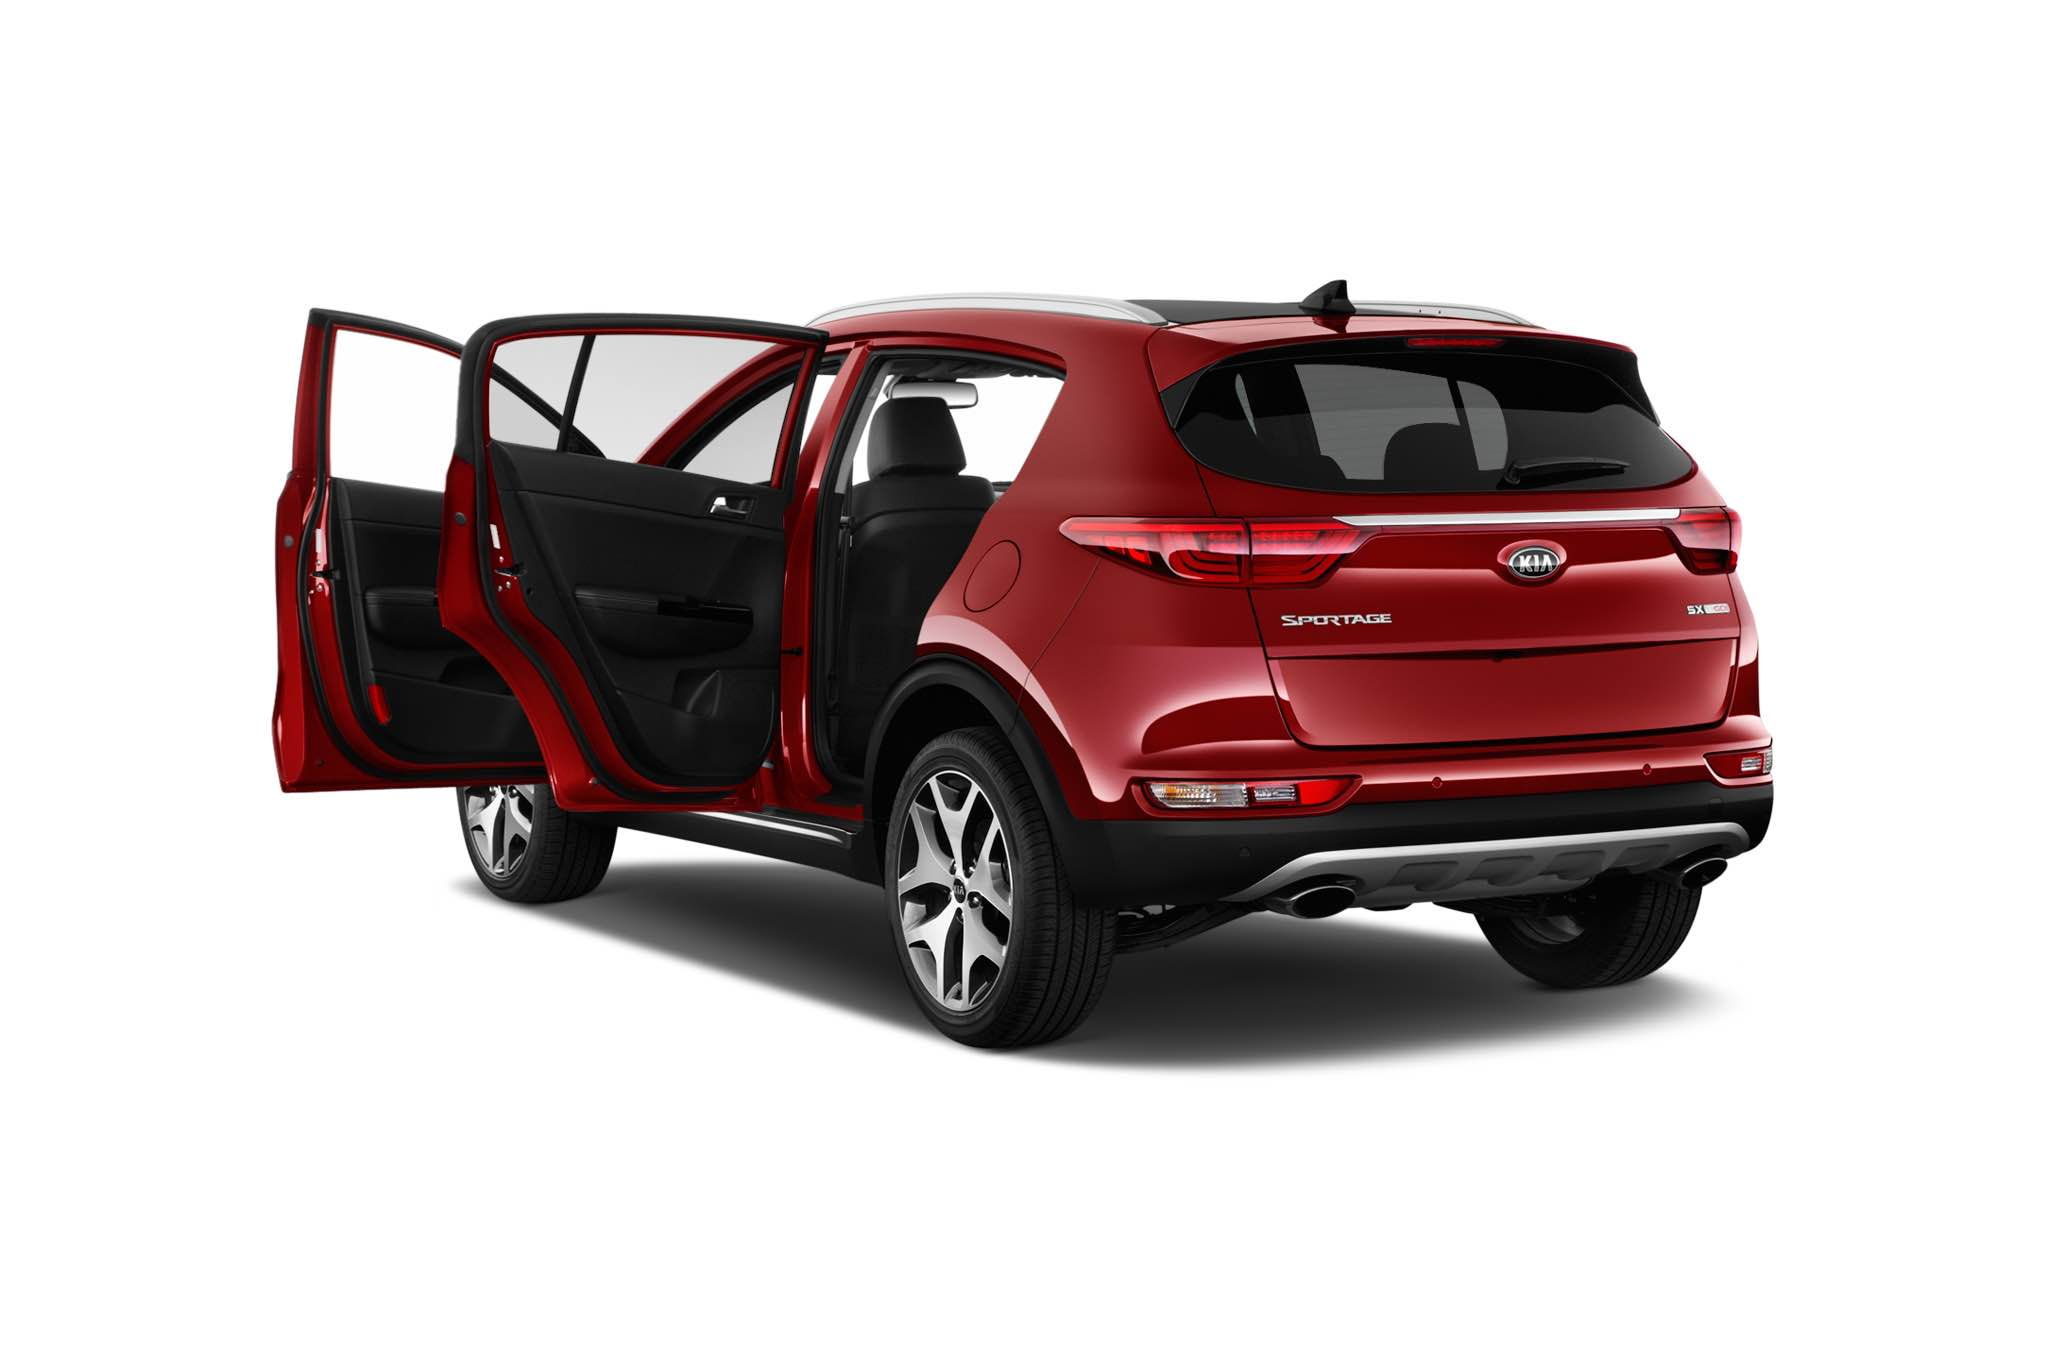 prix kia sportage 2 l diesel gt line a partir de 138 980 dt. Black Bedroom Furniture Sets. Home Design Ideas